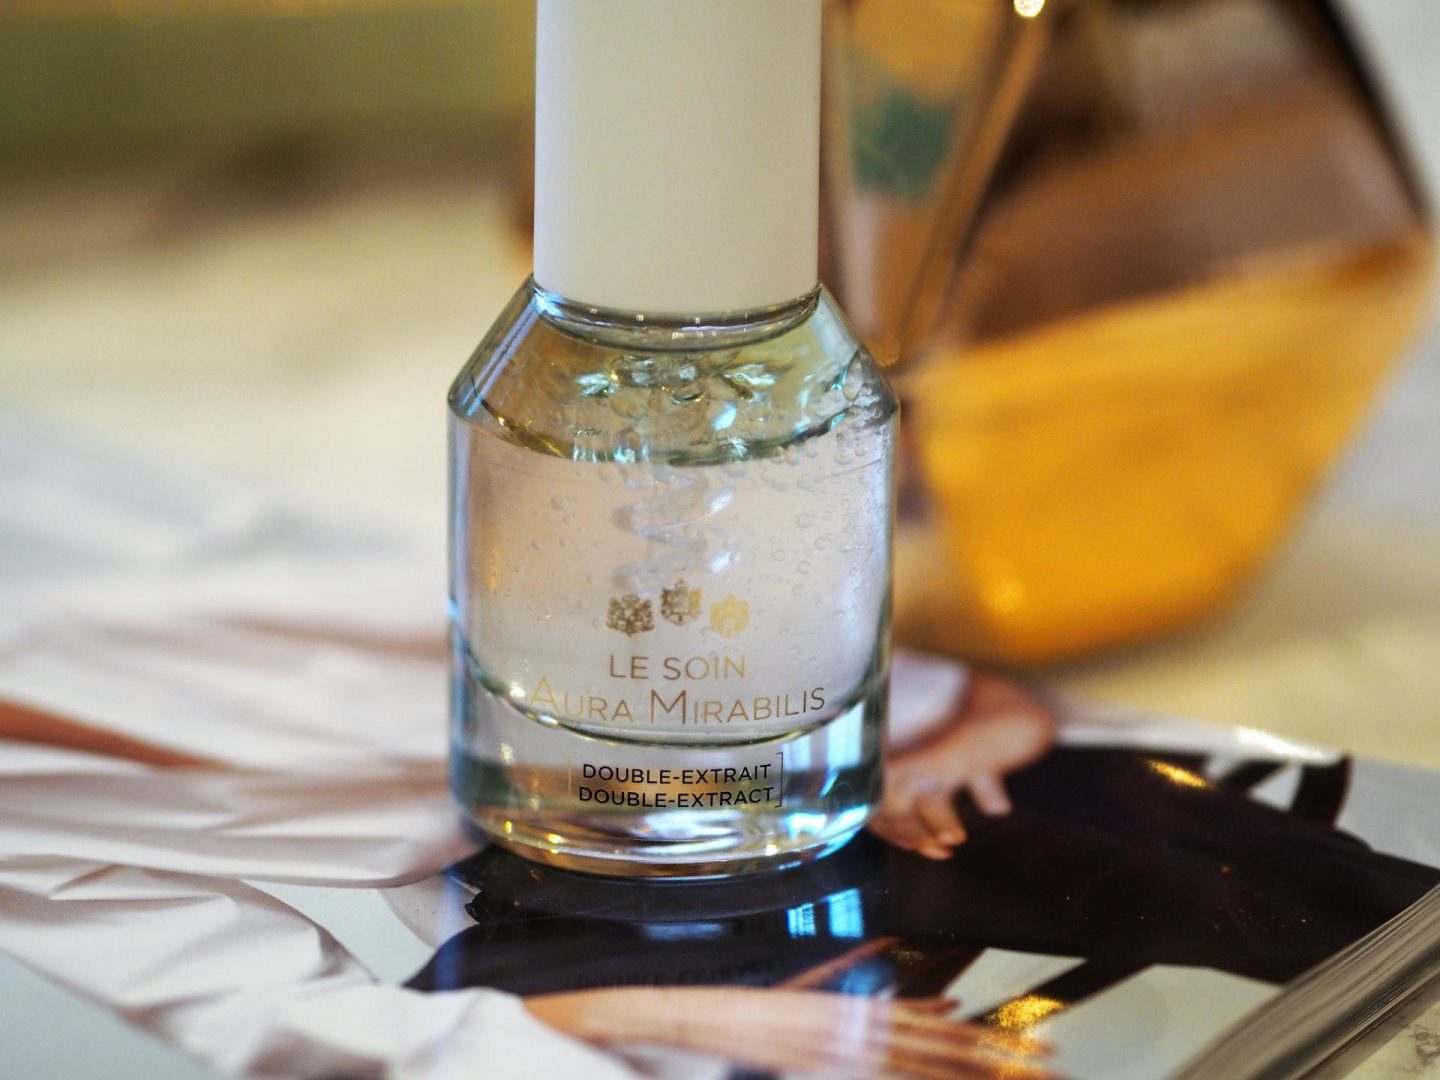 Roger & Gallet Le Soin Mirabilis Double Extract Serum